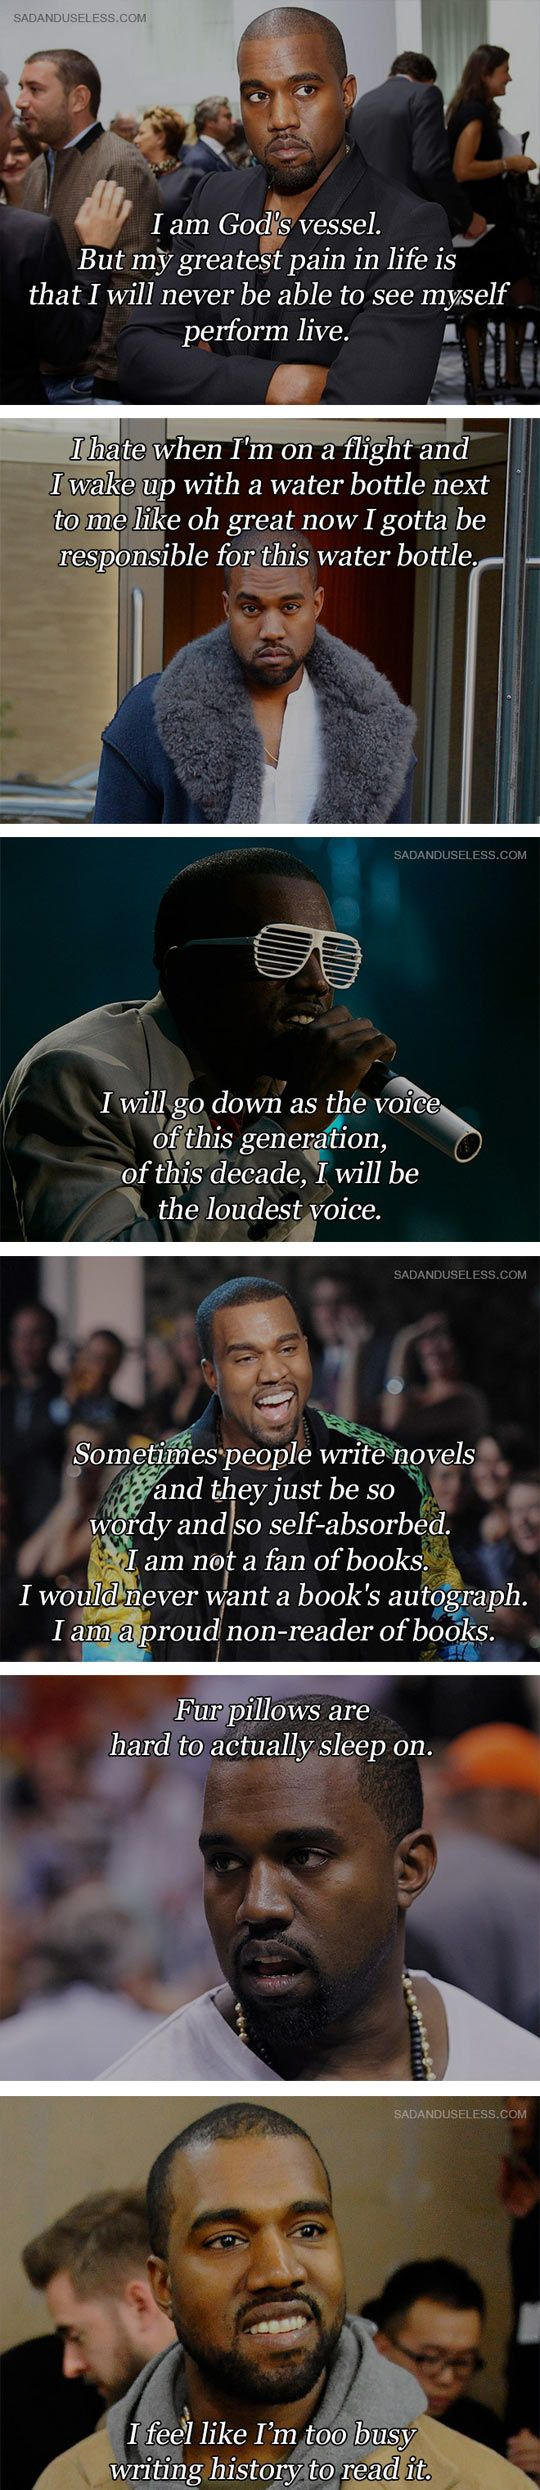 "Some Kanye West Quotes. And a bonus: ""For me to say I wasn't a genius, I would just be lying to you and to myself."" If you have to tell people you're a genius, you're not"